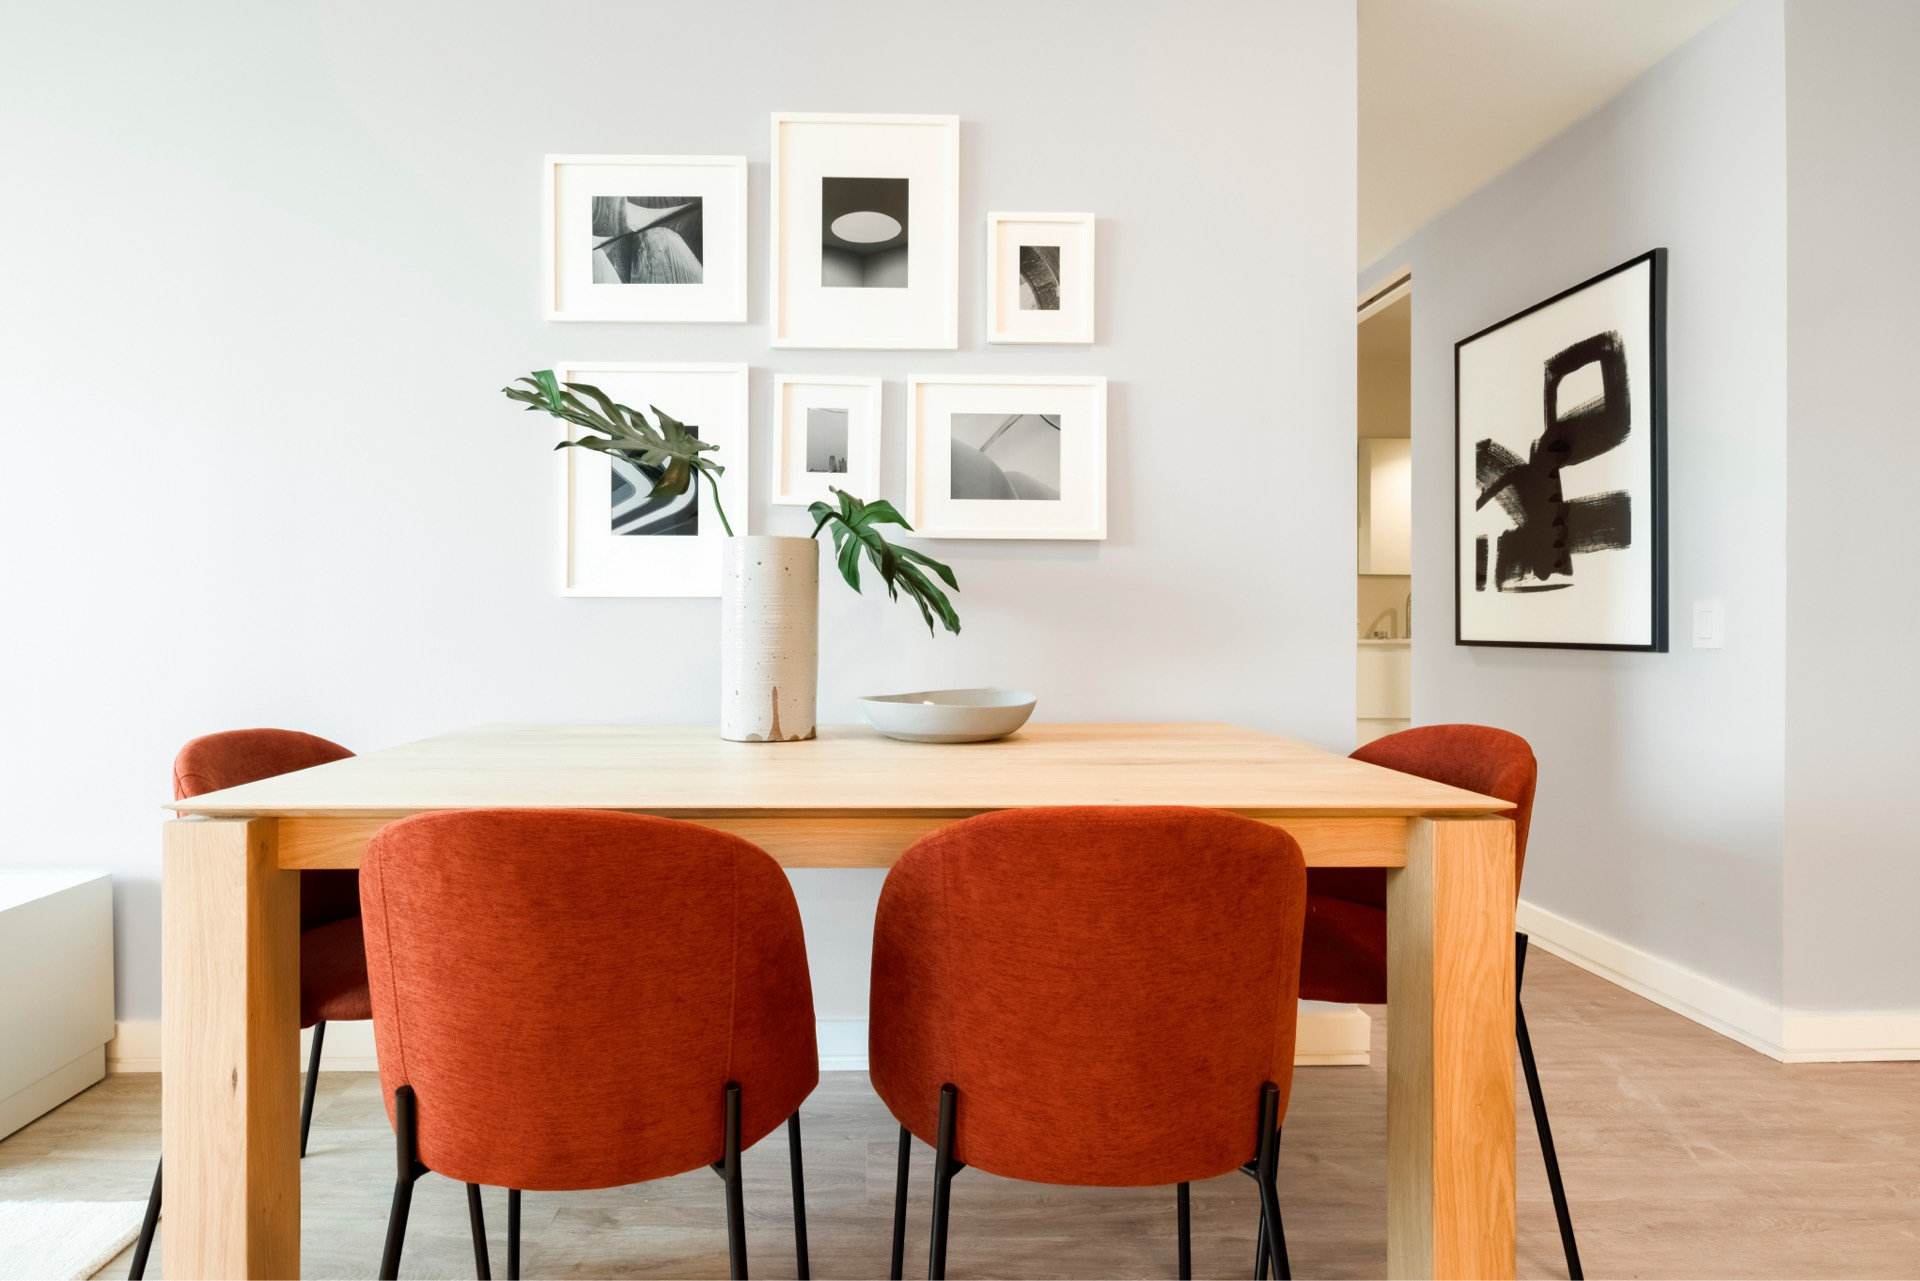 Plenty of space for a dining table